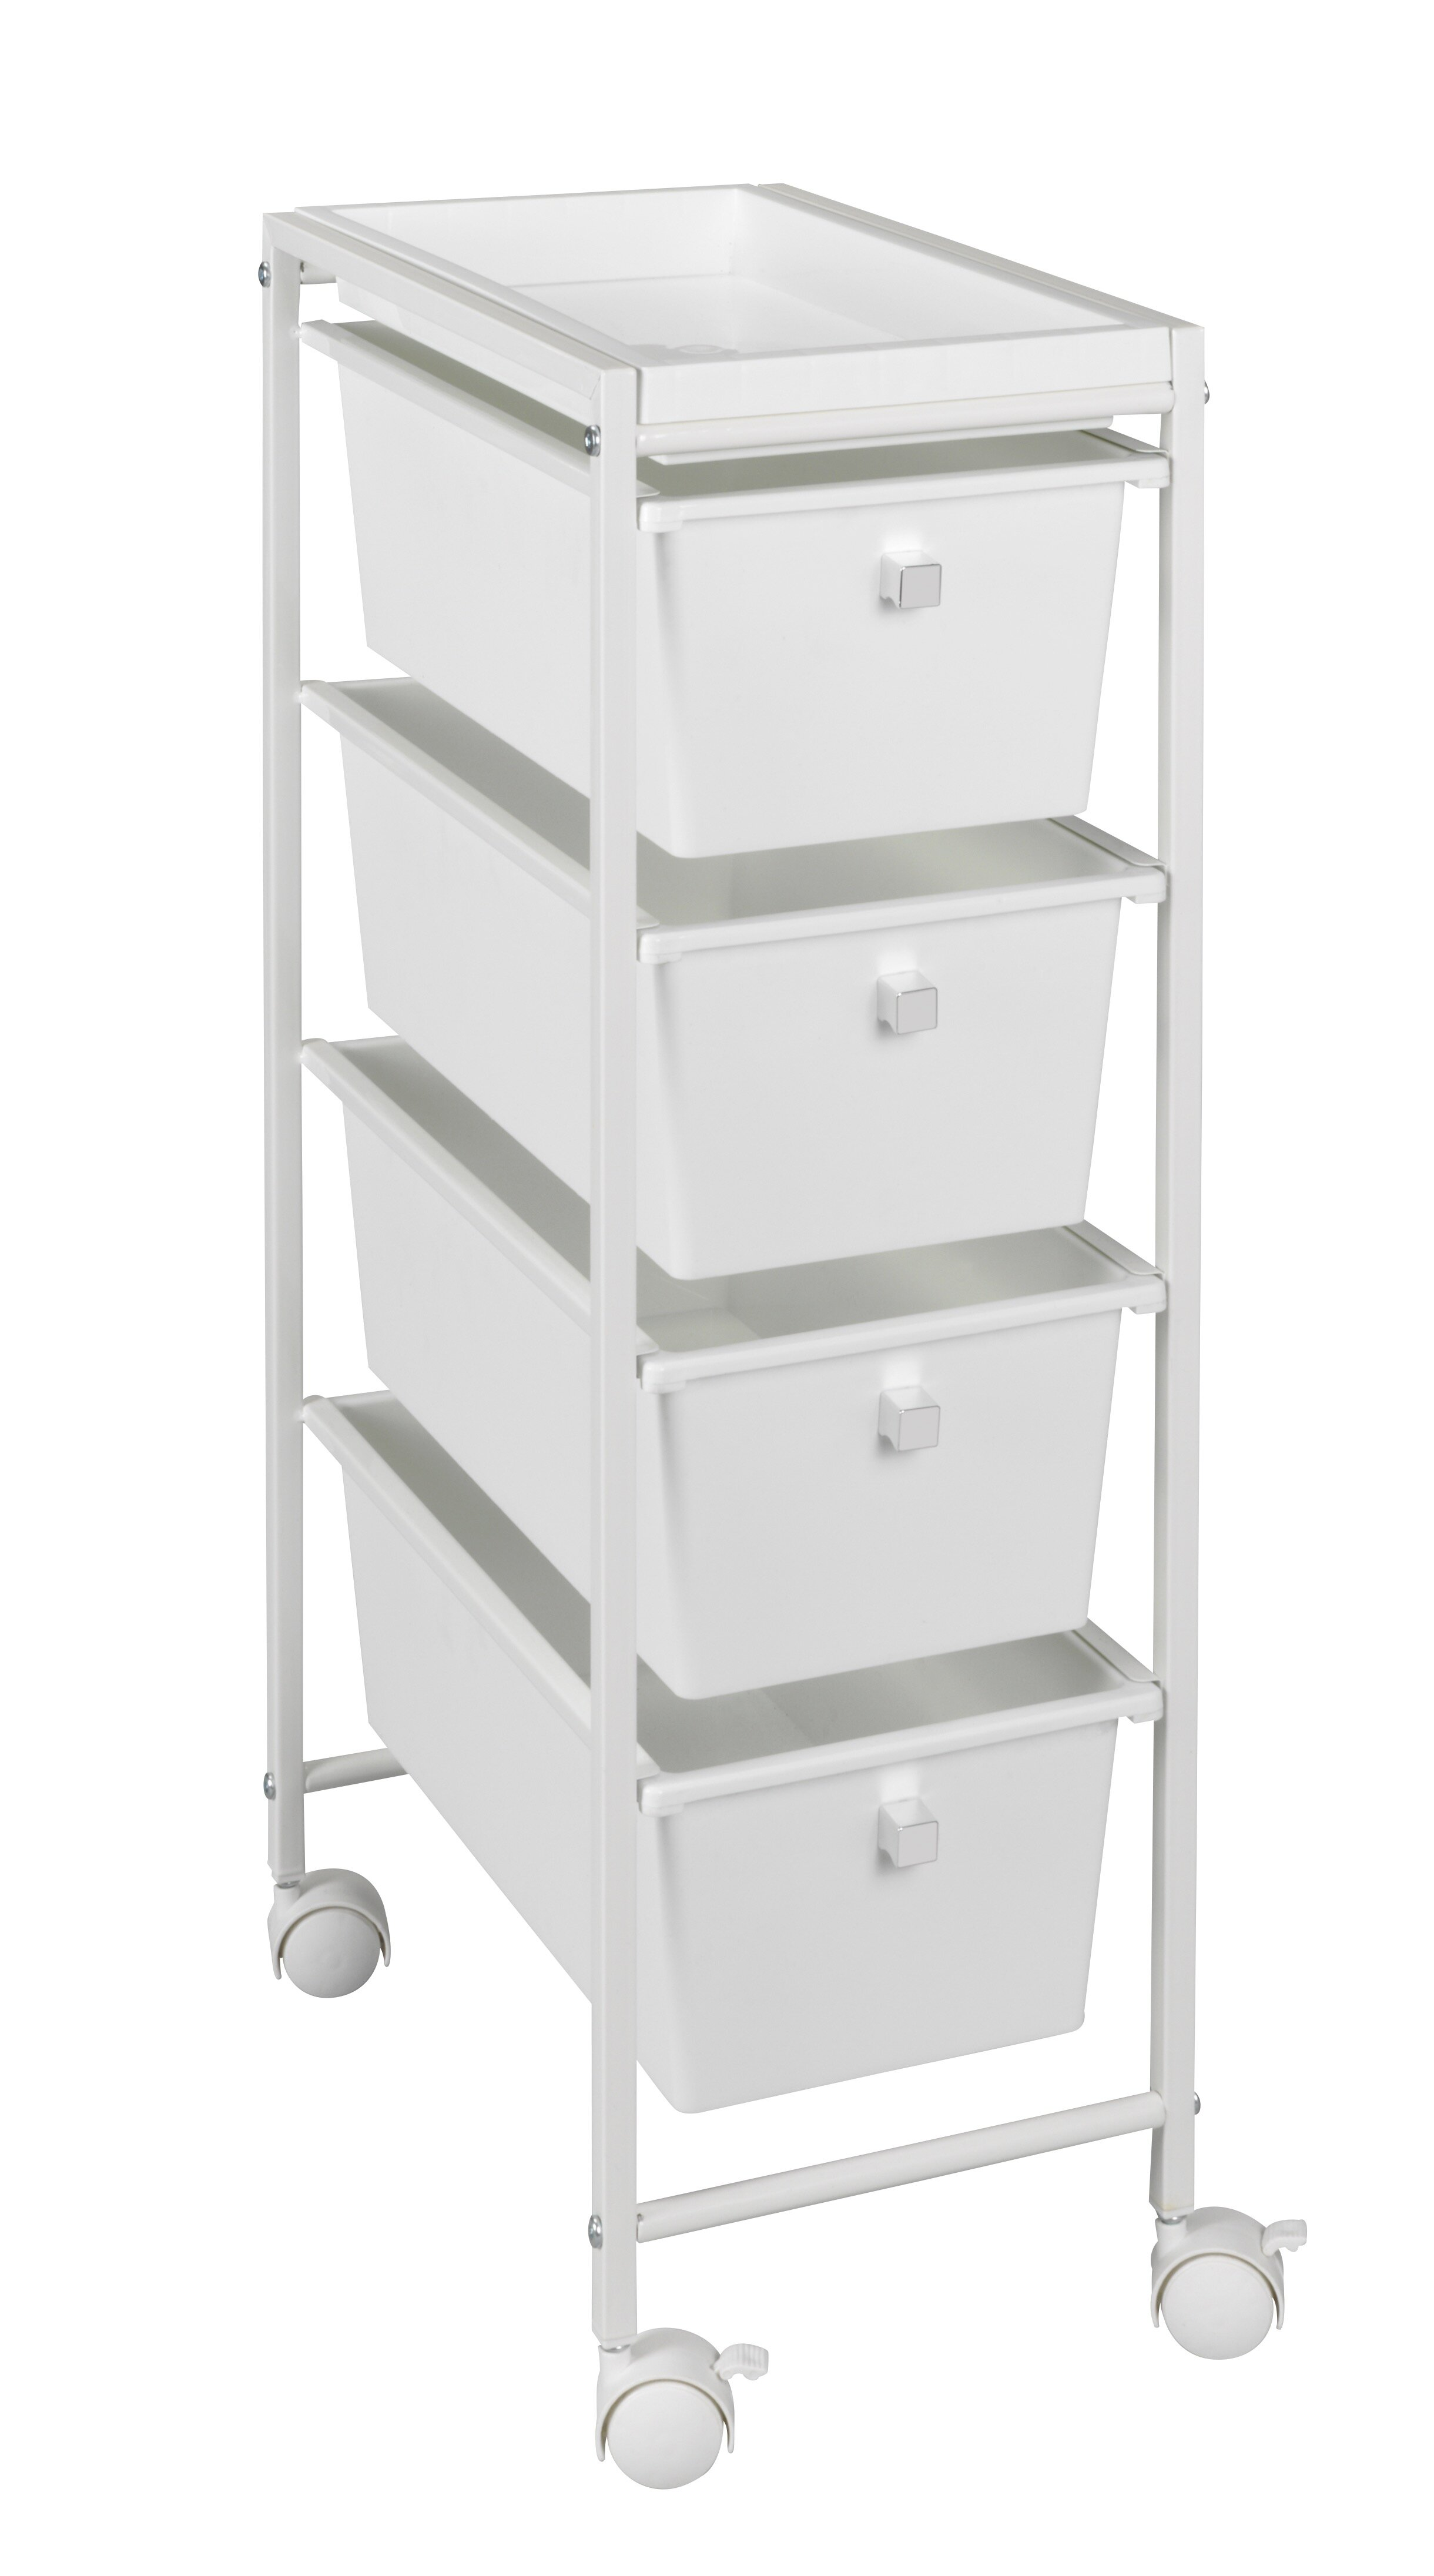 id showa searches trolley shower en products eastin medical scaleo stretchers dlf detail bathing database